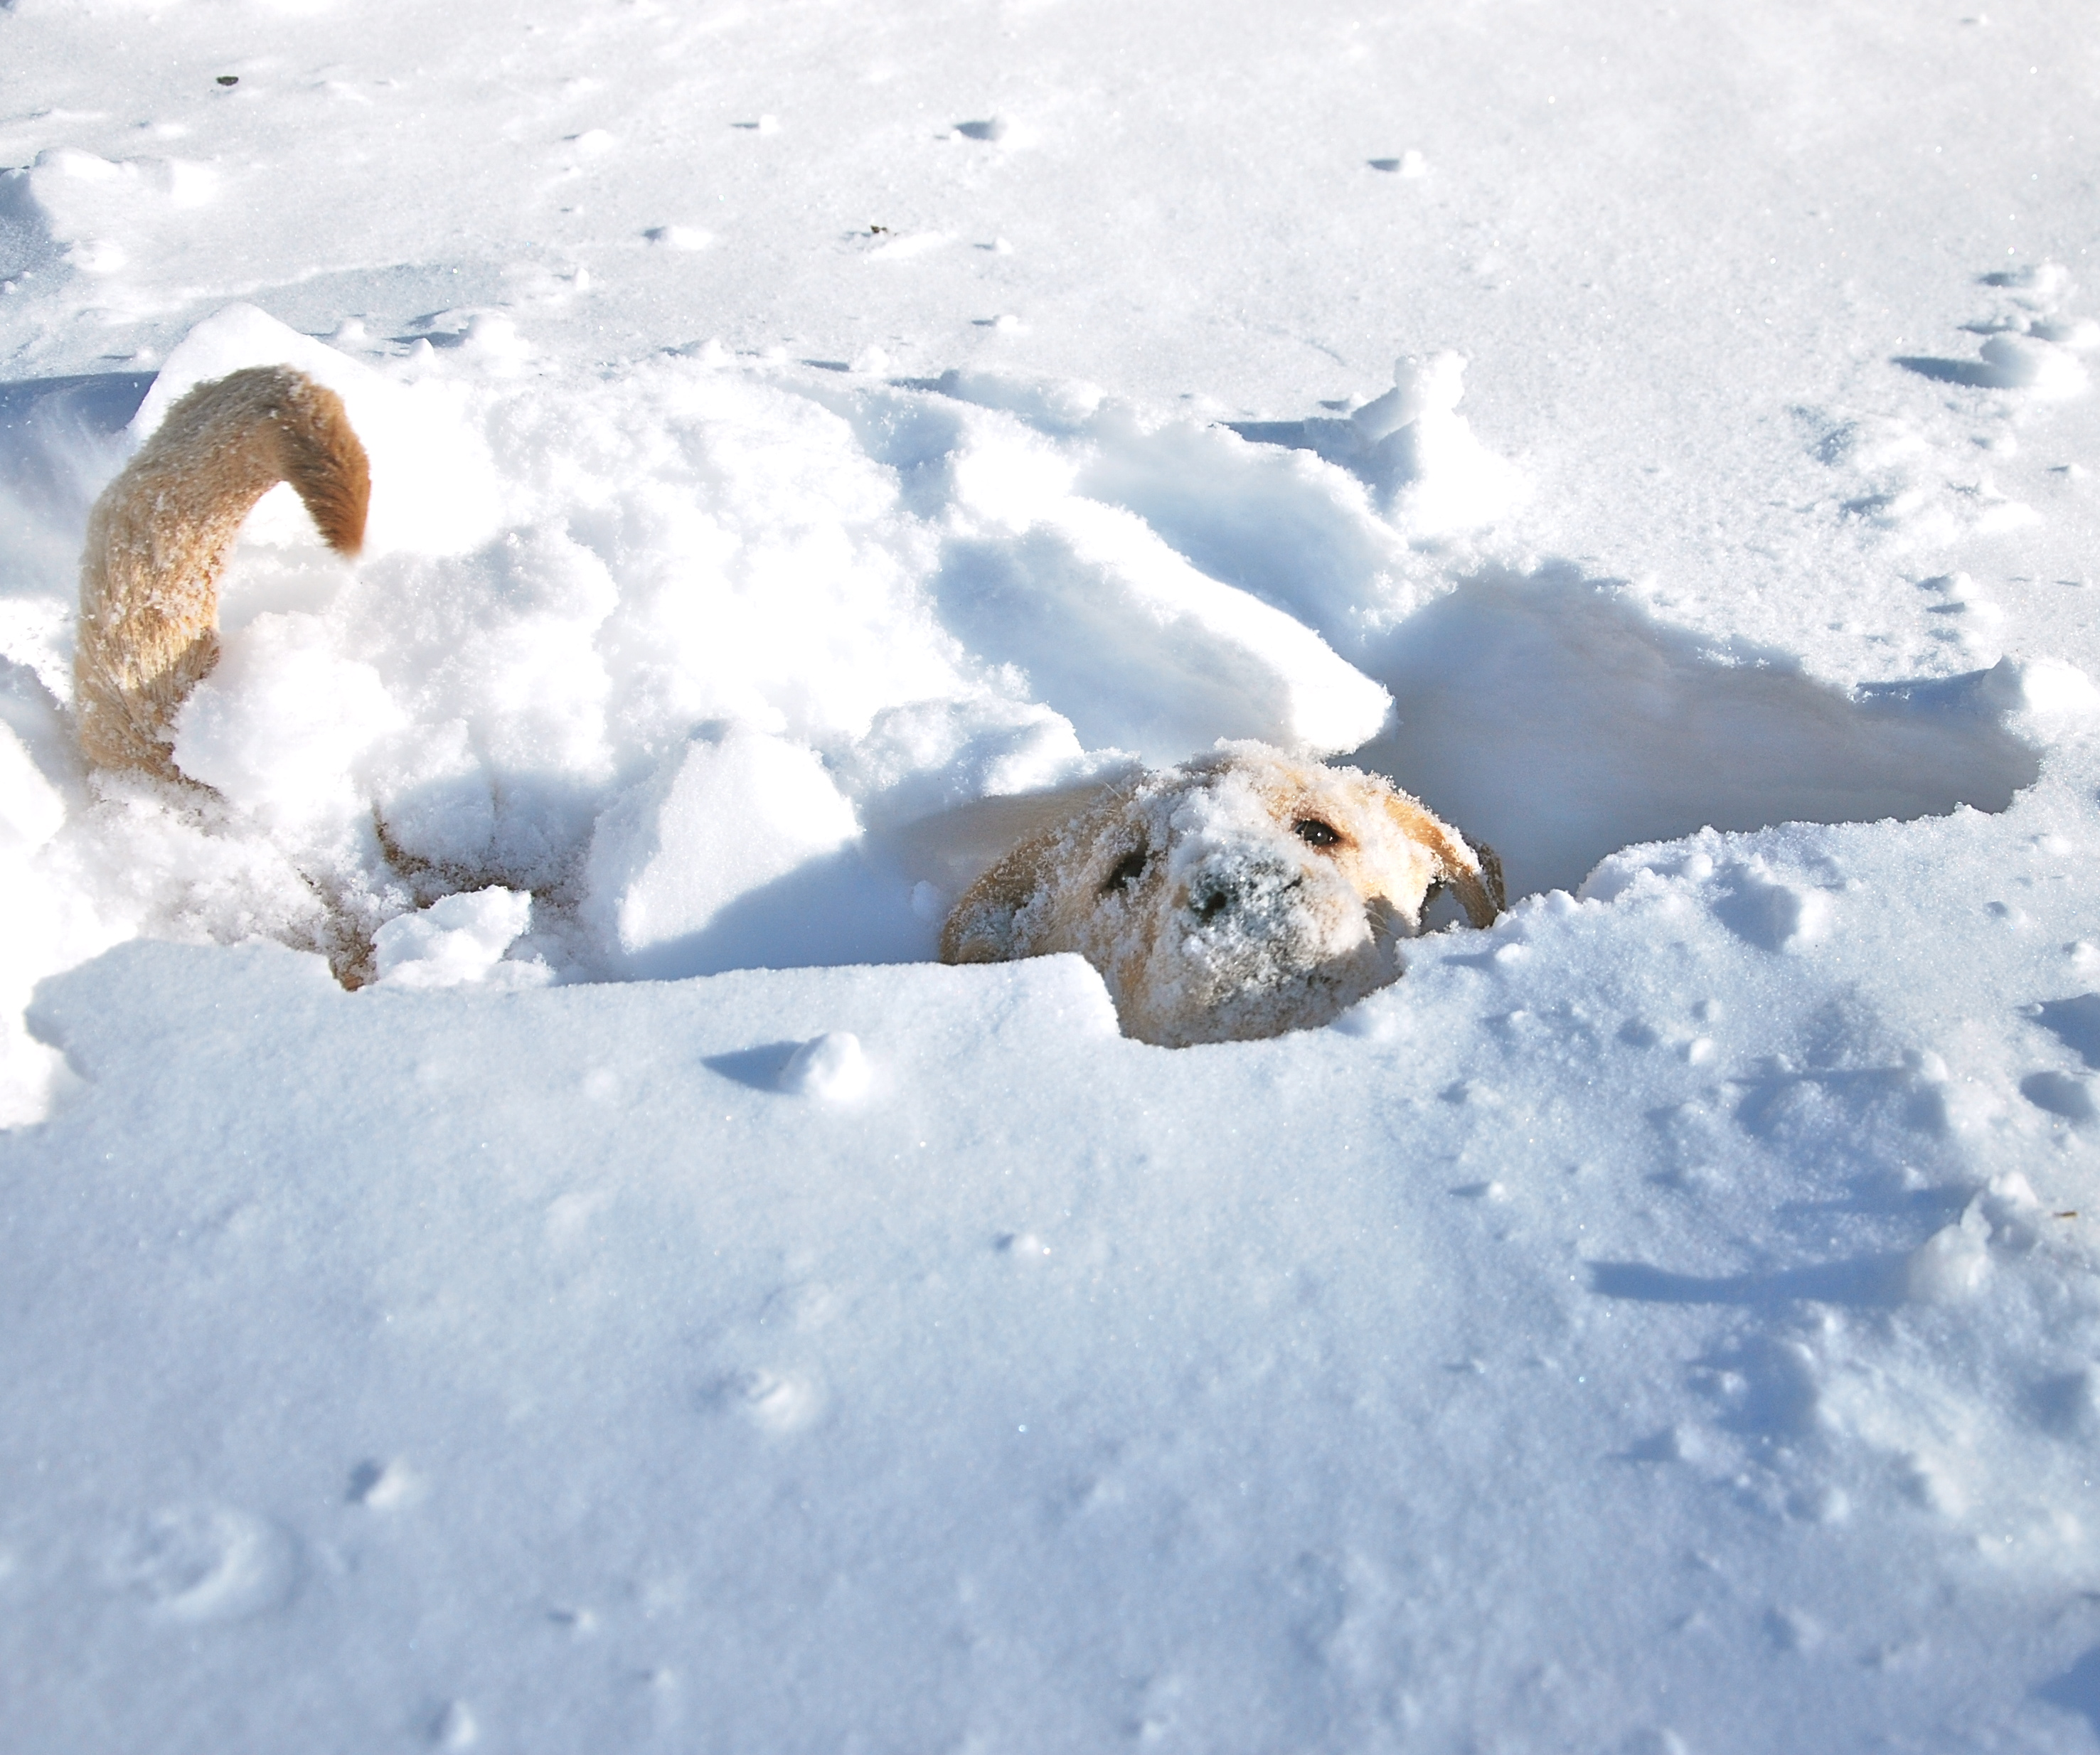 Cute Puppies In Snow Images & Pictures - Becuo